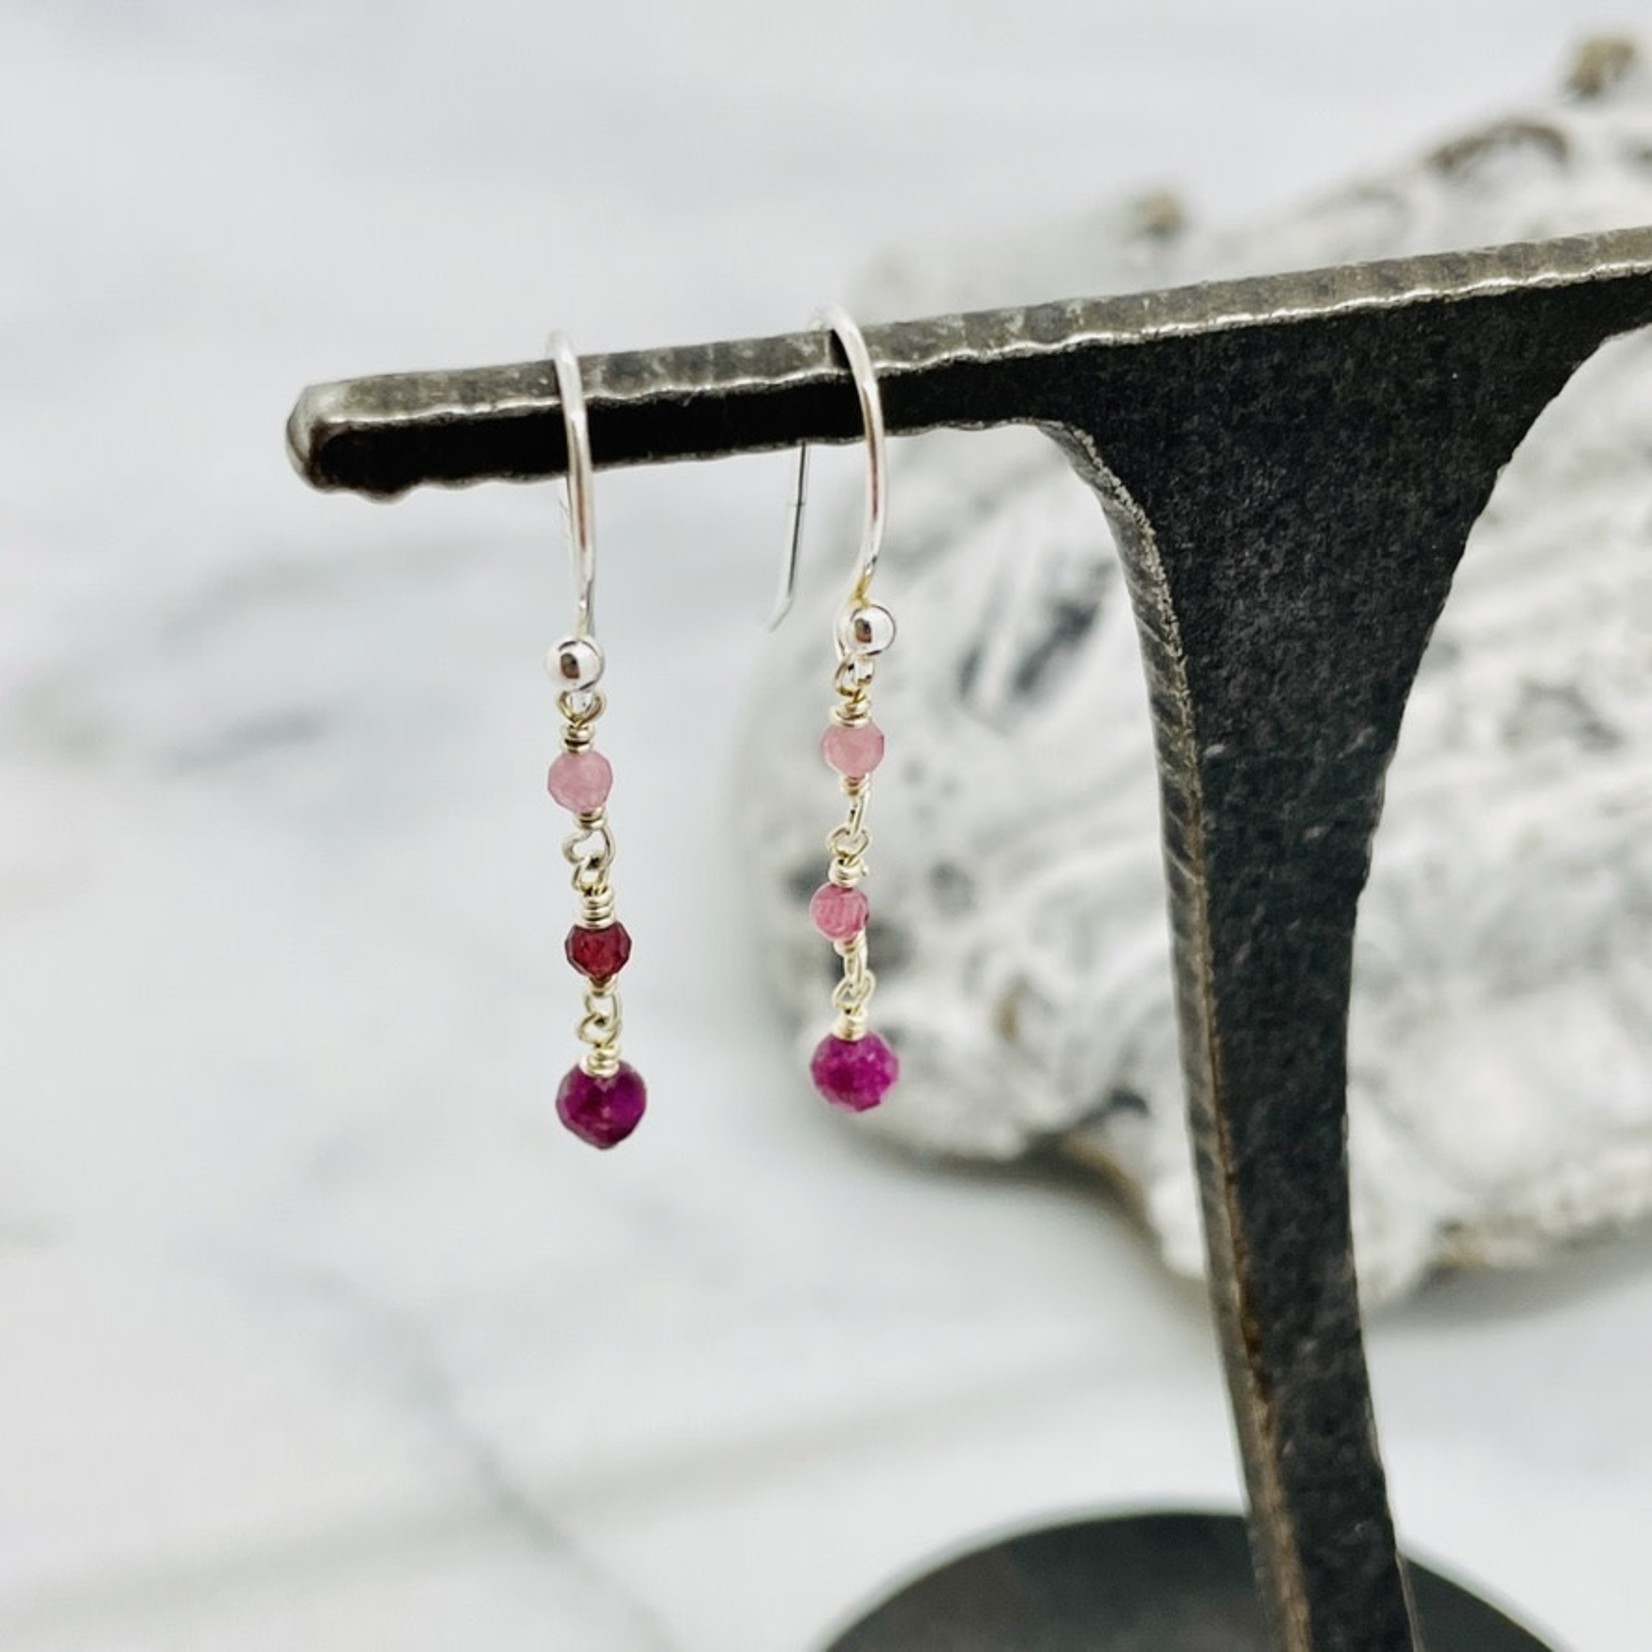 EVANKNOX Handmade Earrings with connected ruby, pink tourmaline